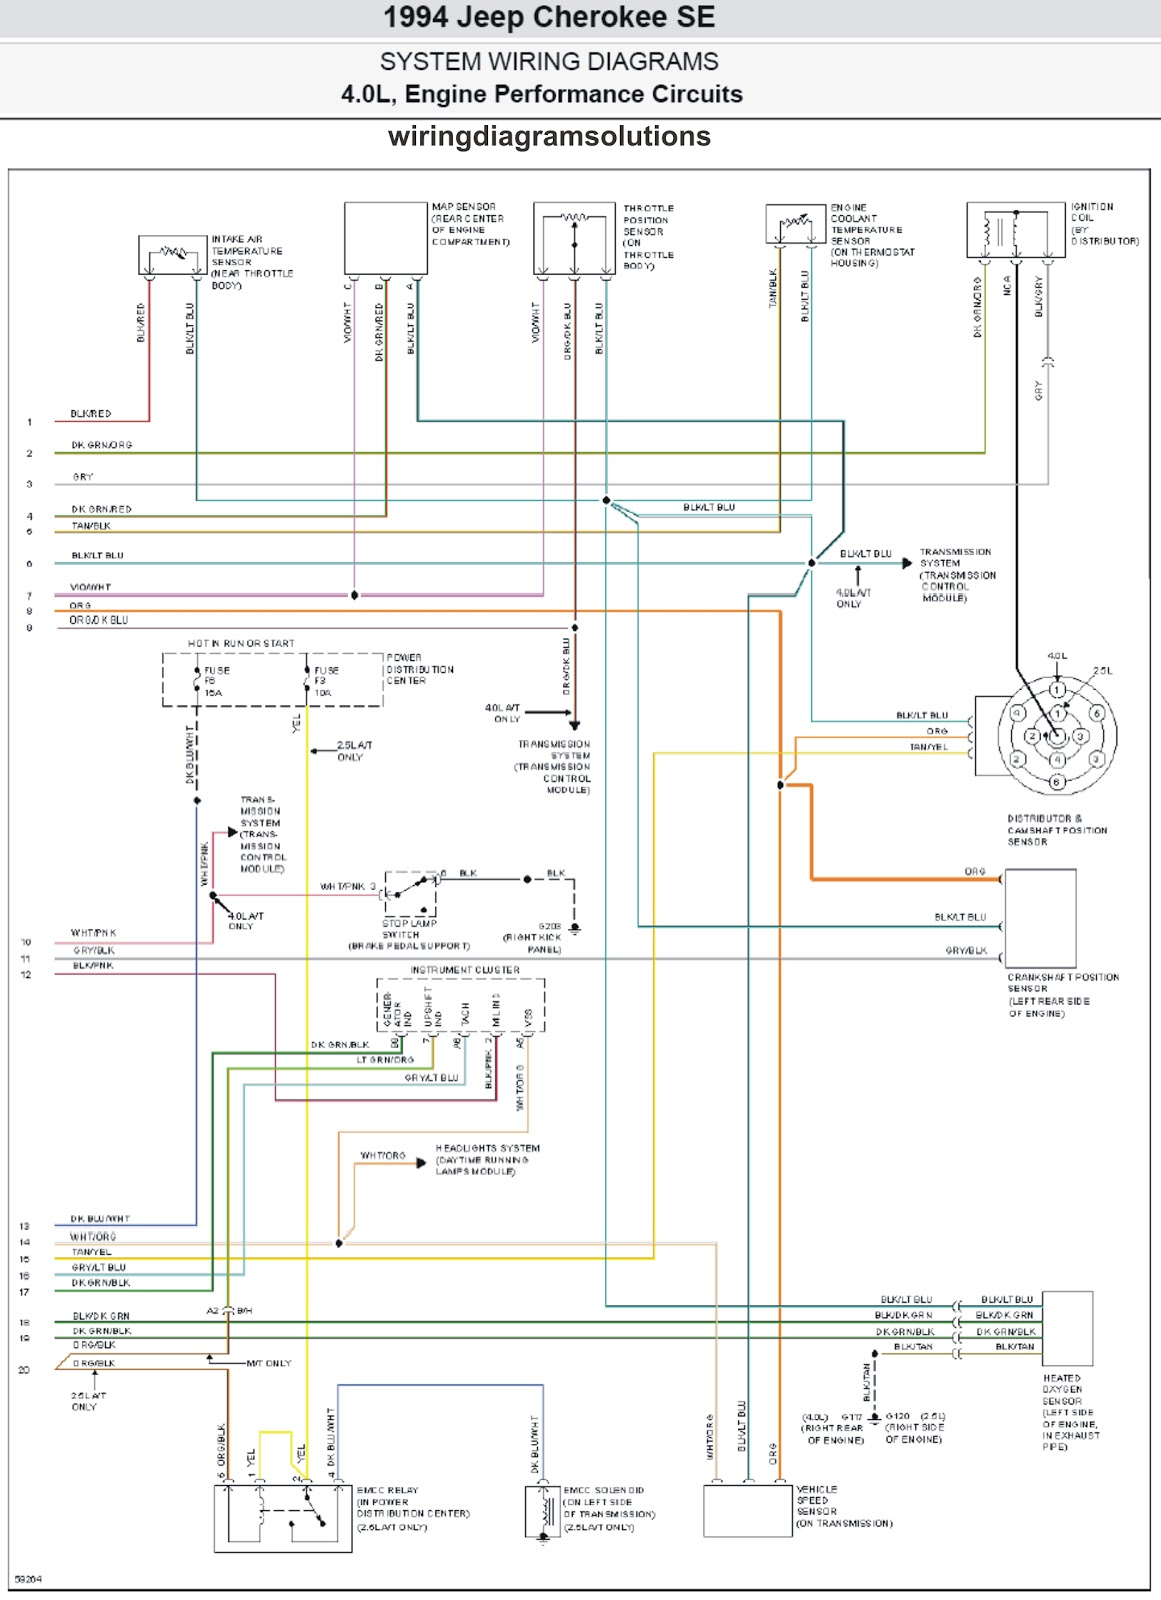 jeep cherokee stereo wiring diagram with 2011 05 01 Archive on 2009 Nissan Versa Battery And Power Supply Wiring Diagram in addition 1998 Ford F150 Wiring Diagram additionally 2001 Buick Lesabre Window Wiring Diagram besides Car Lifier Schematic Diagram additionally Jeep Wrangler Uconnect Wiring Diagram.